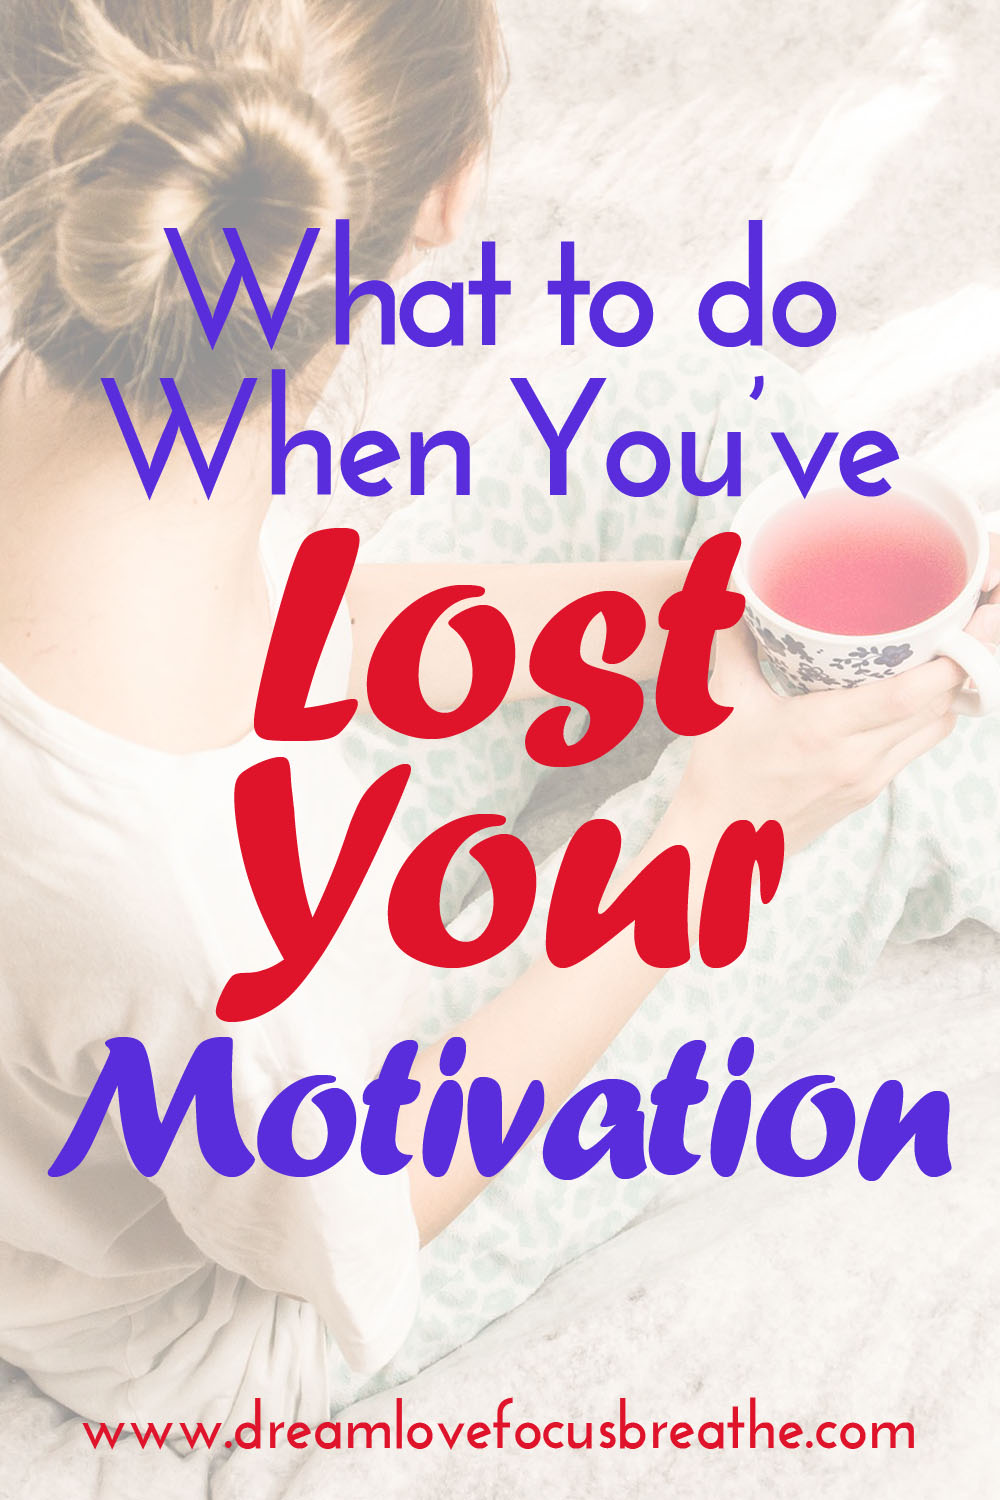 What to Do When You've Lost Your Motivation.jpg